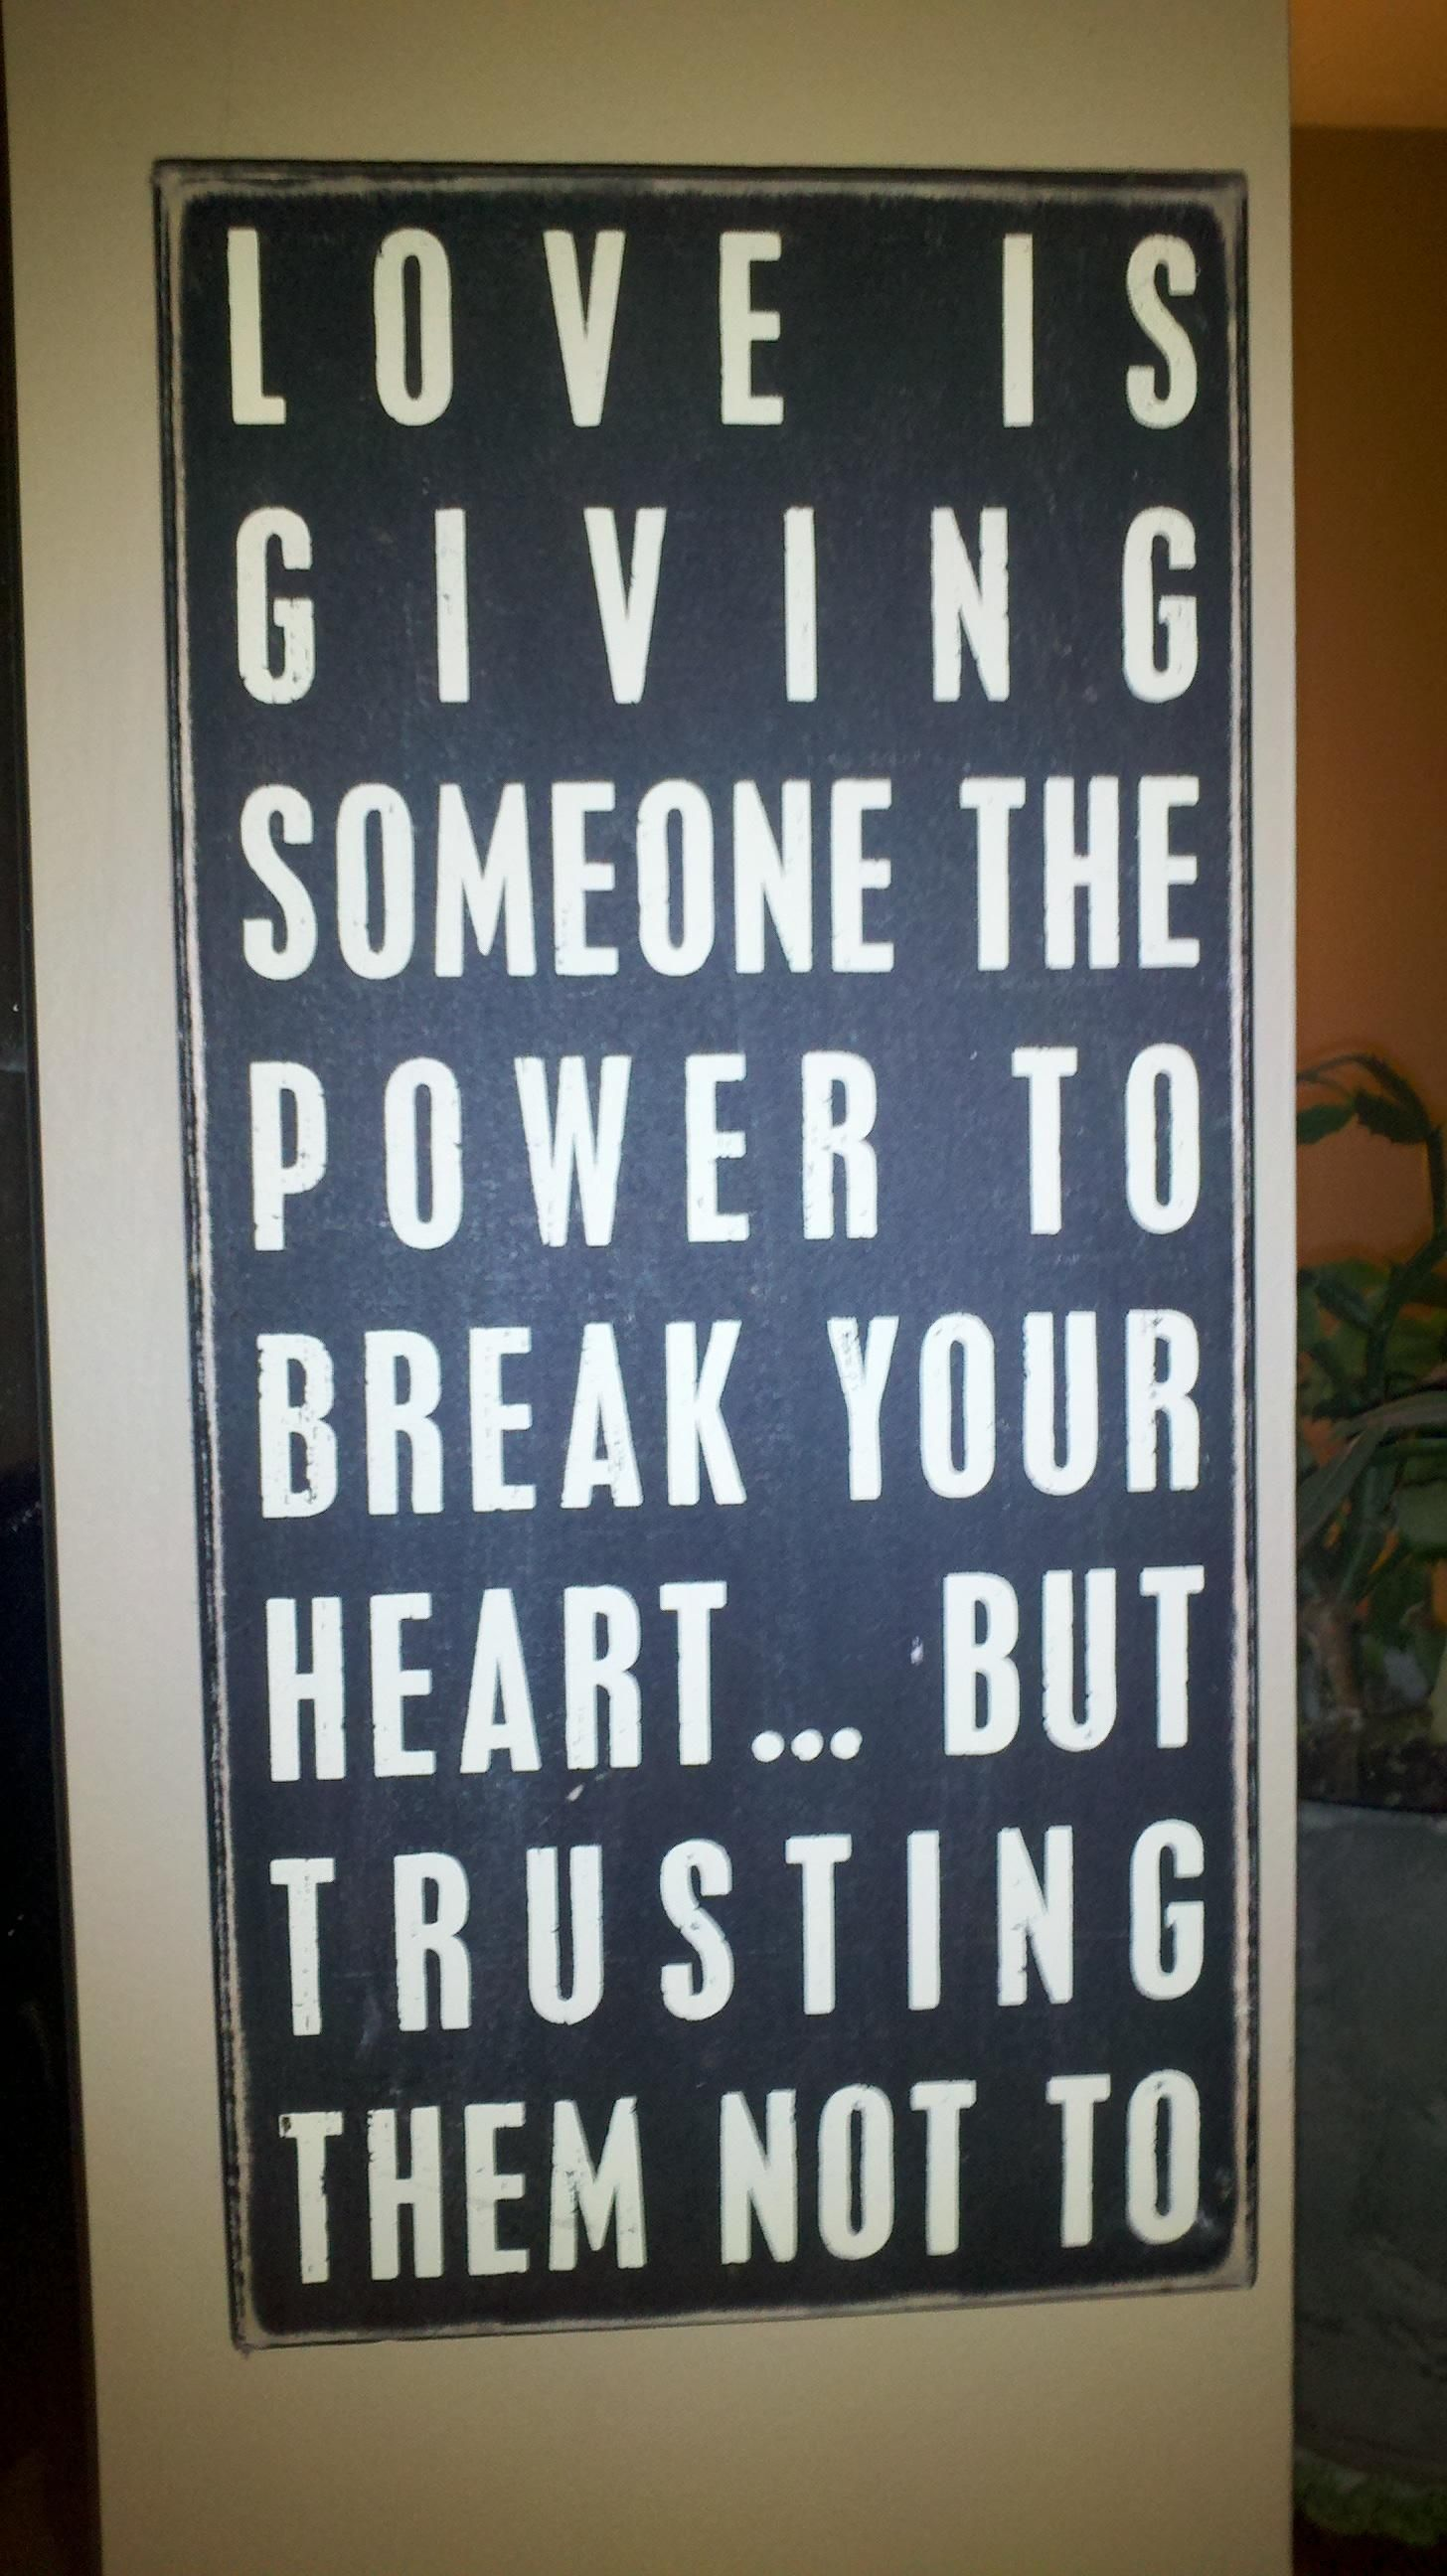 Love is giving someone the power to break your heart but trusting